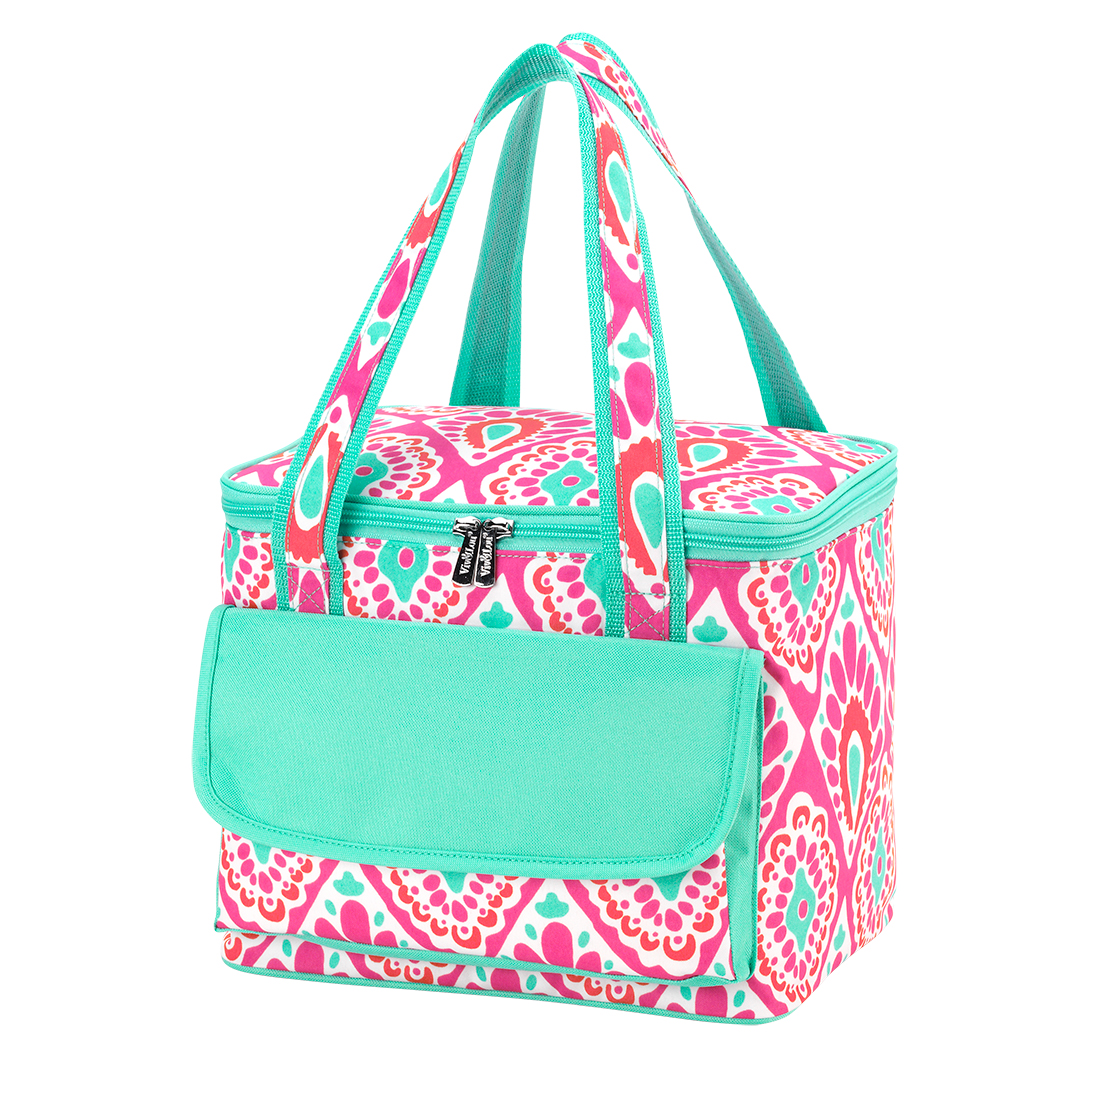 Monogrammed Cooler Bag Beachy Keen